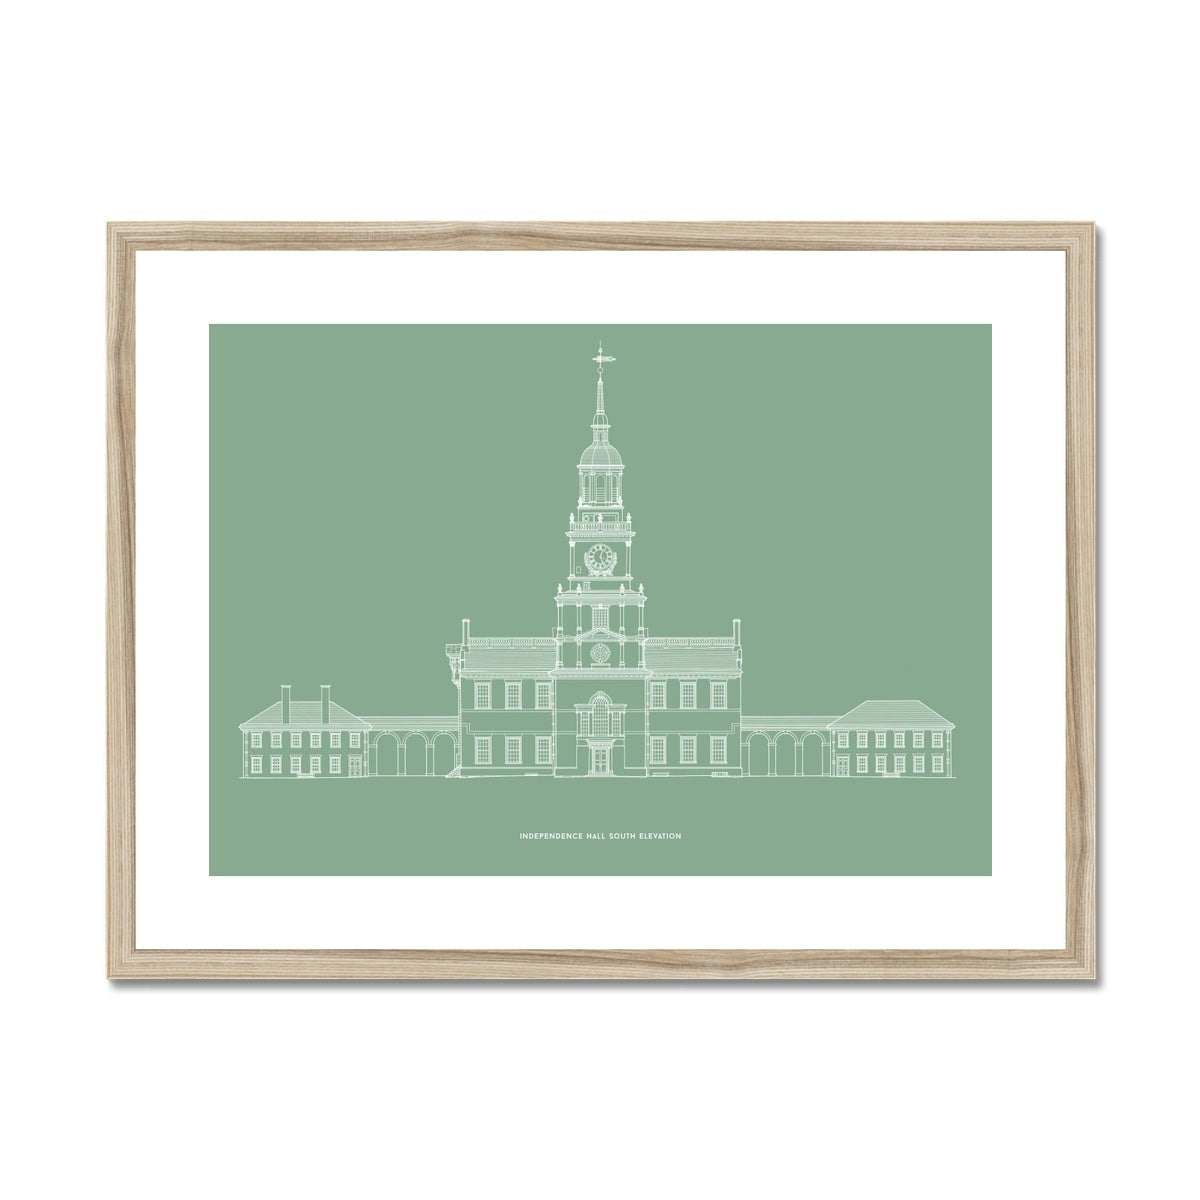 Independence Hall - South Elevation - Green -  Framed & Mounted Print